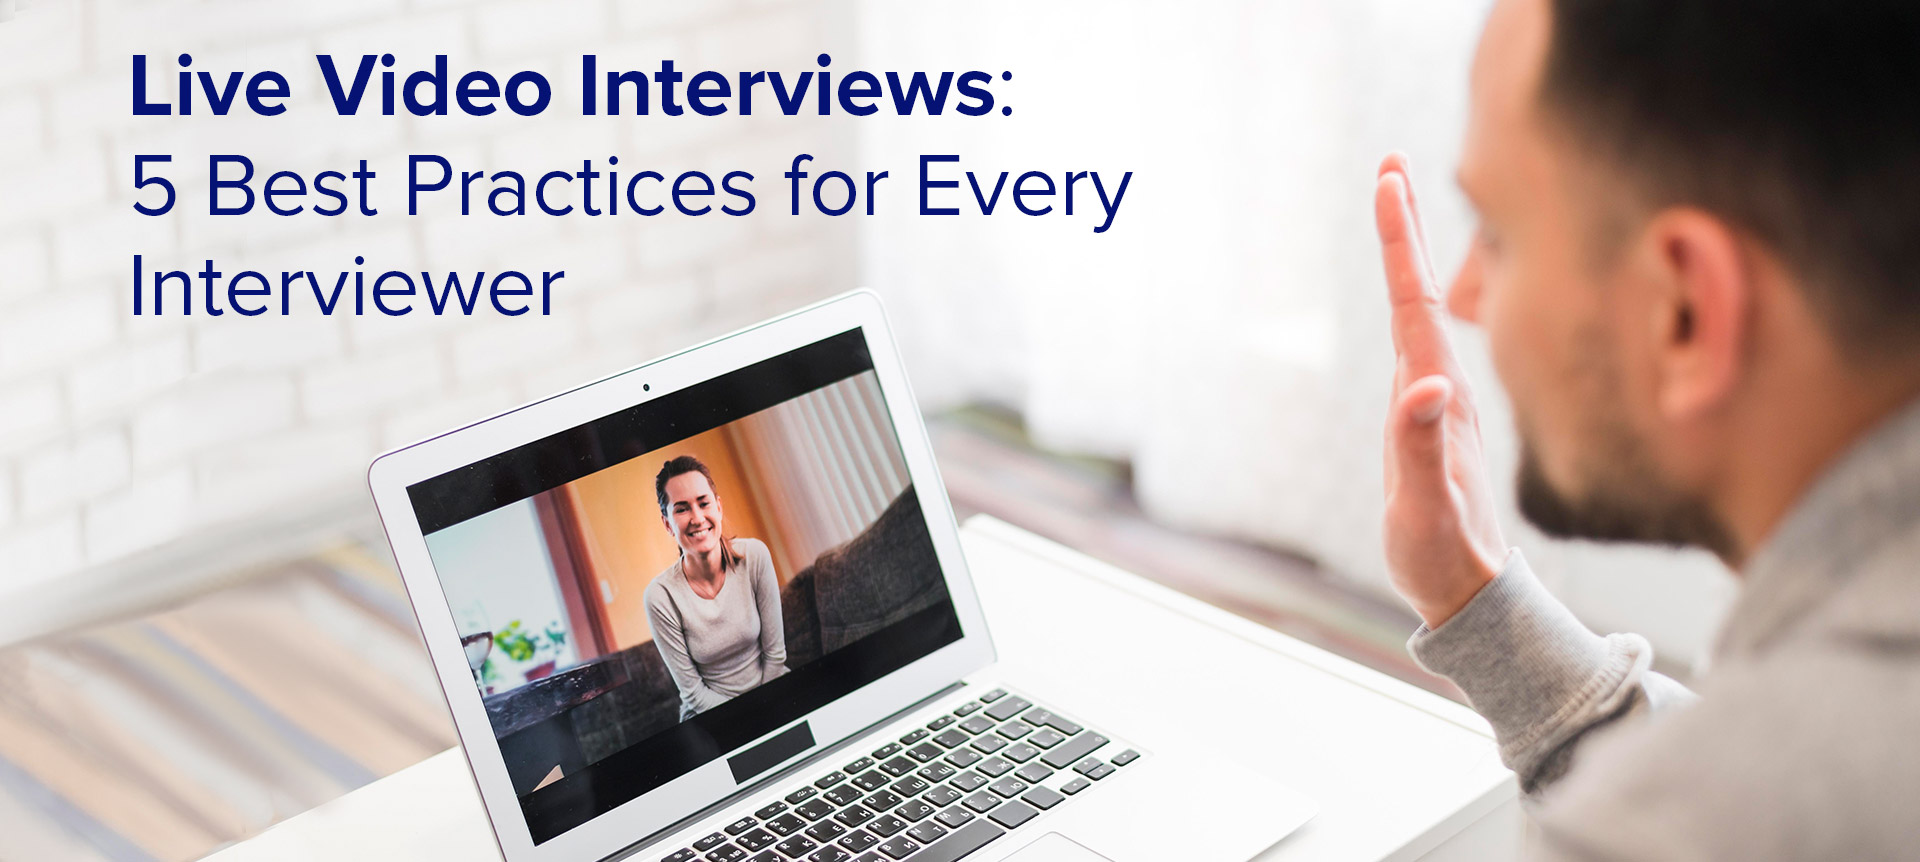 candidate conducting a video interviewing process